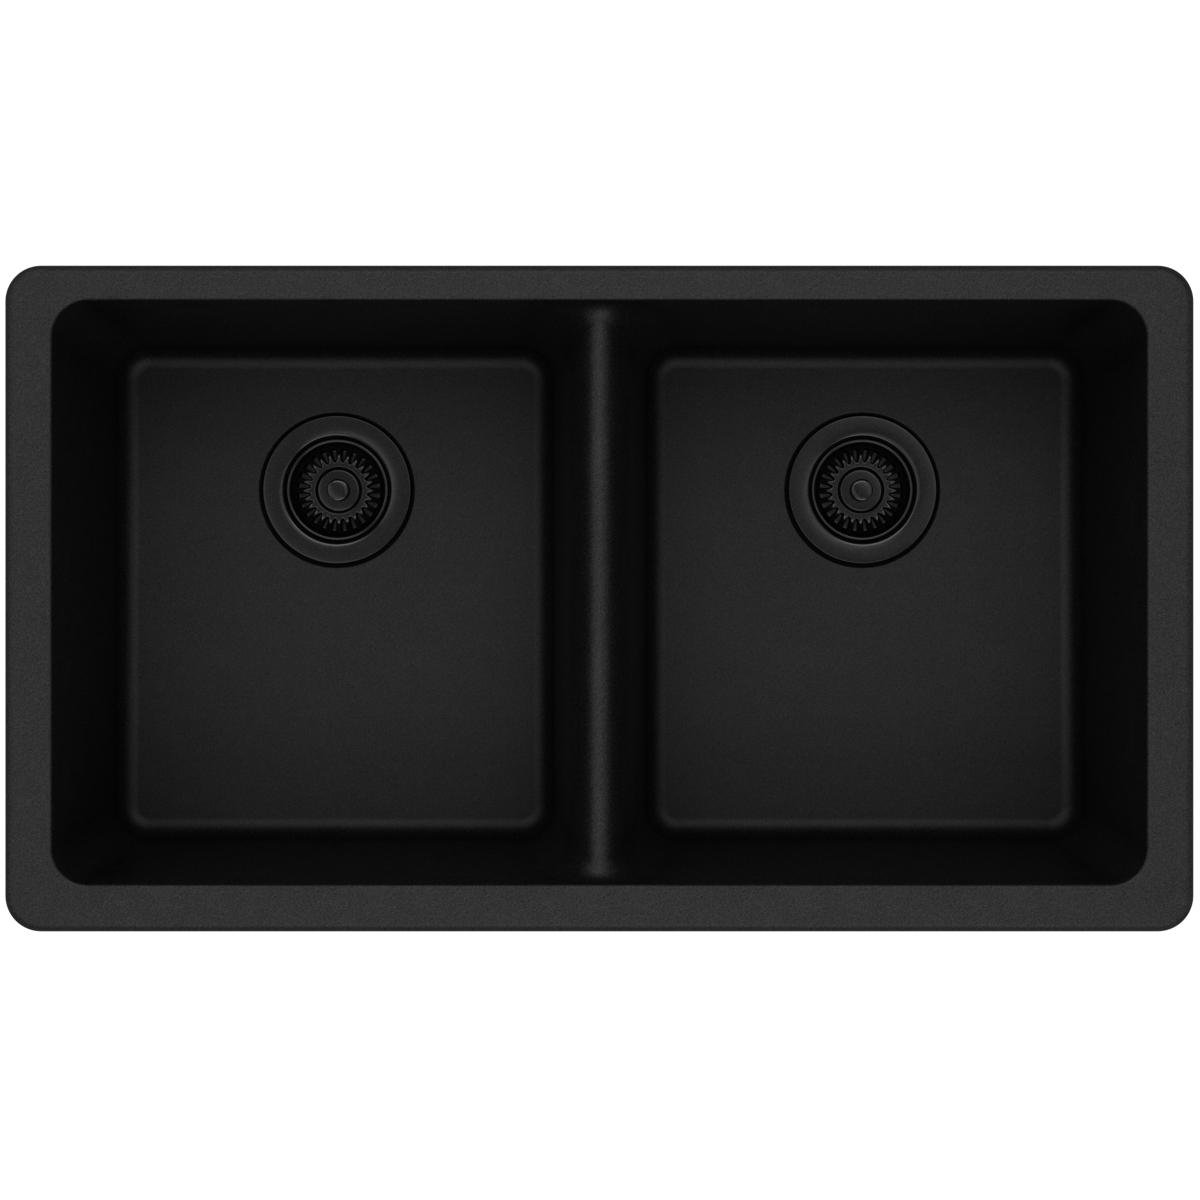 Elkay Quartz Classic ELGU3322BK0 Black Equal Double Bowl Undermount Sink